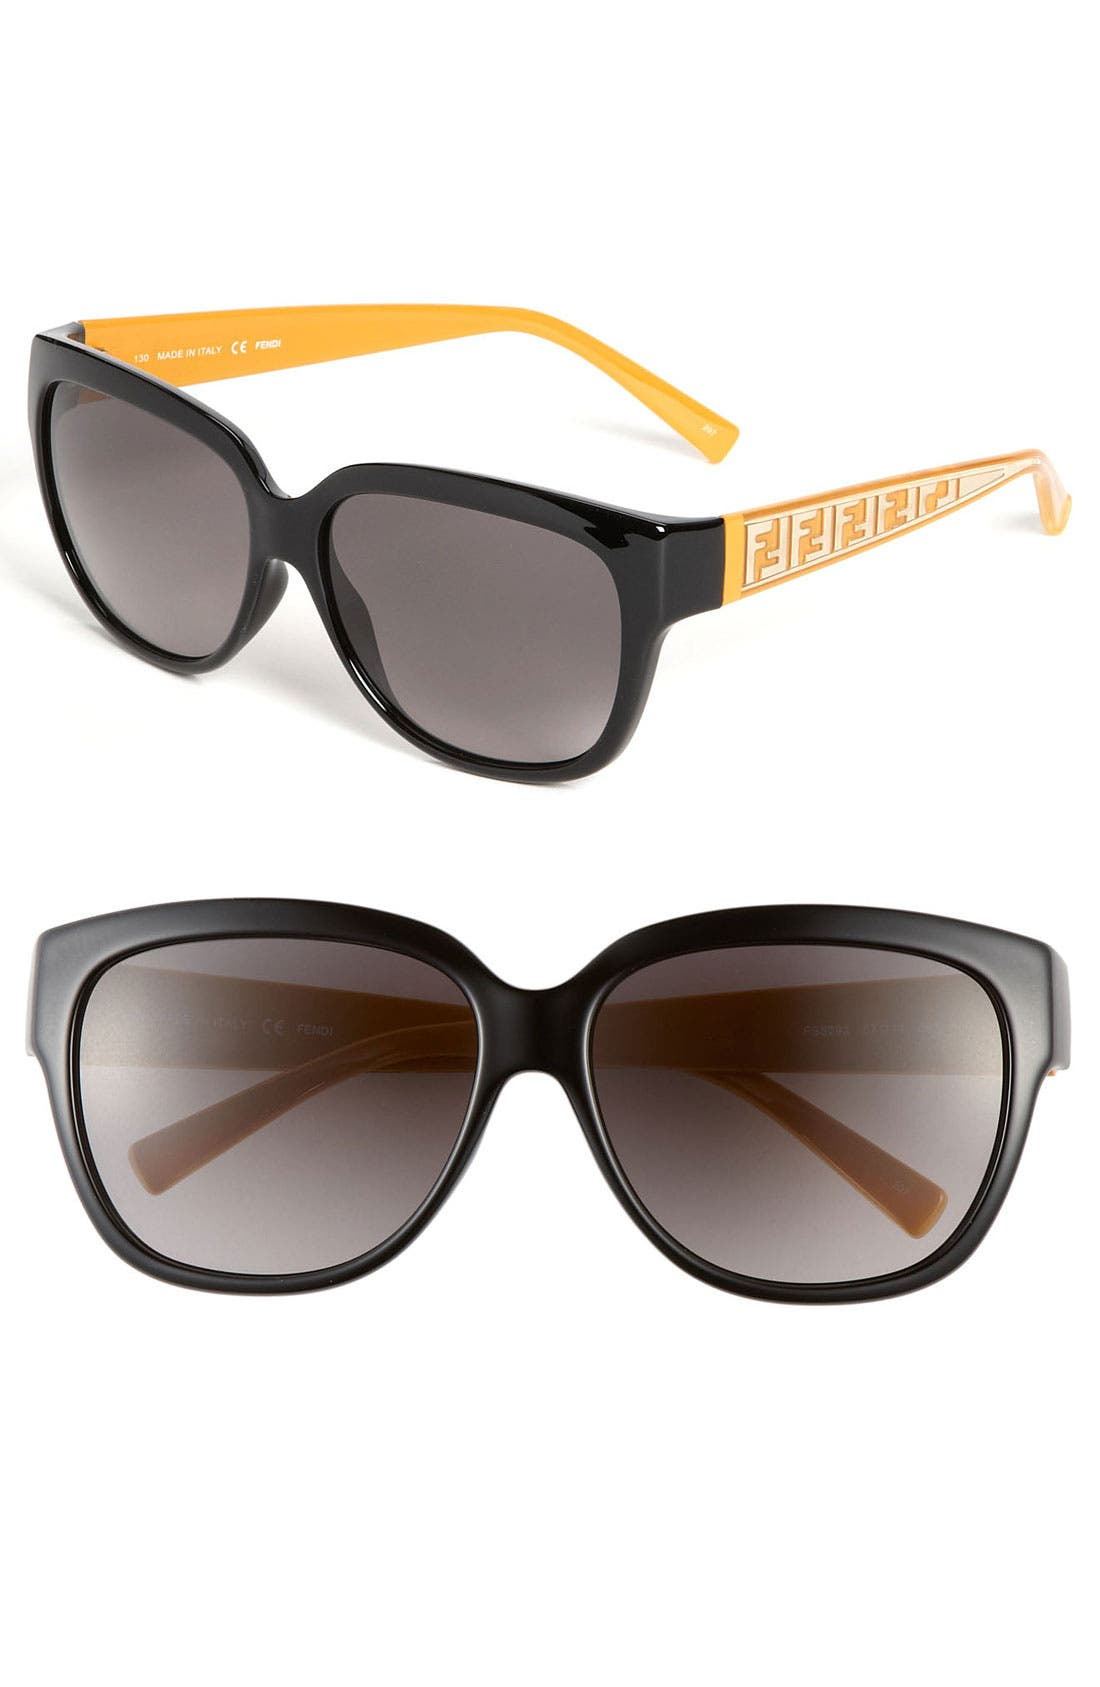 Main Image - Fendi 'Zucca' 57mm Sunglasses